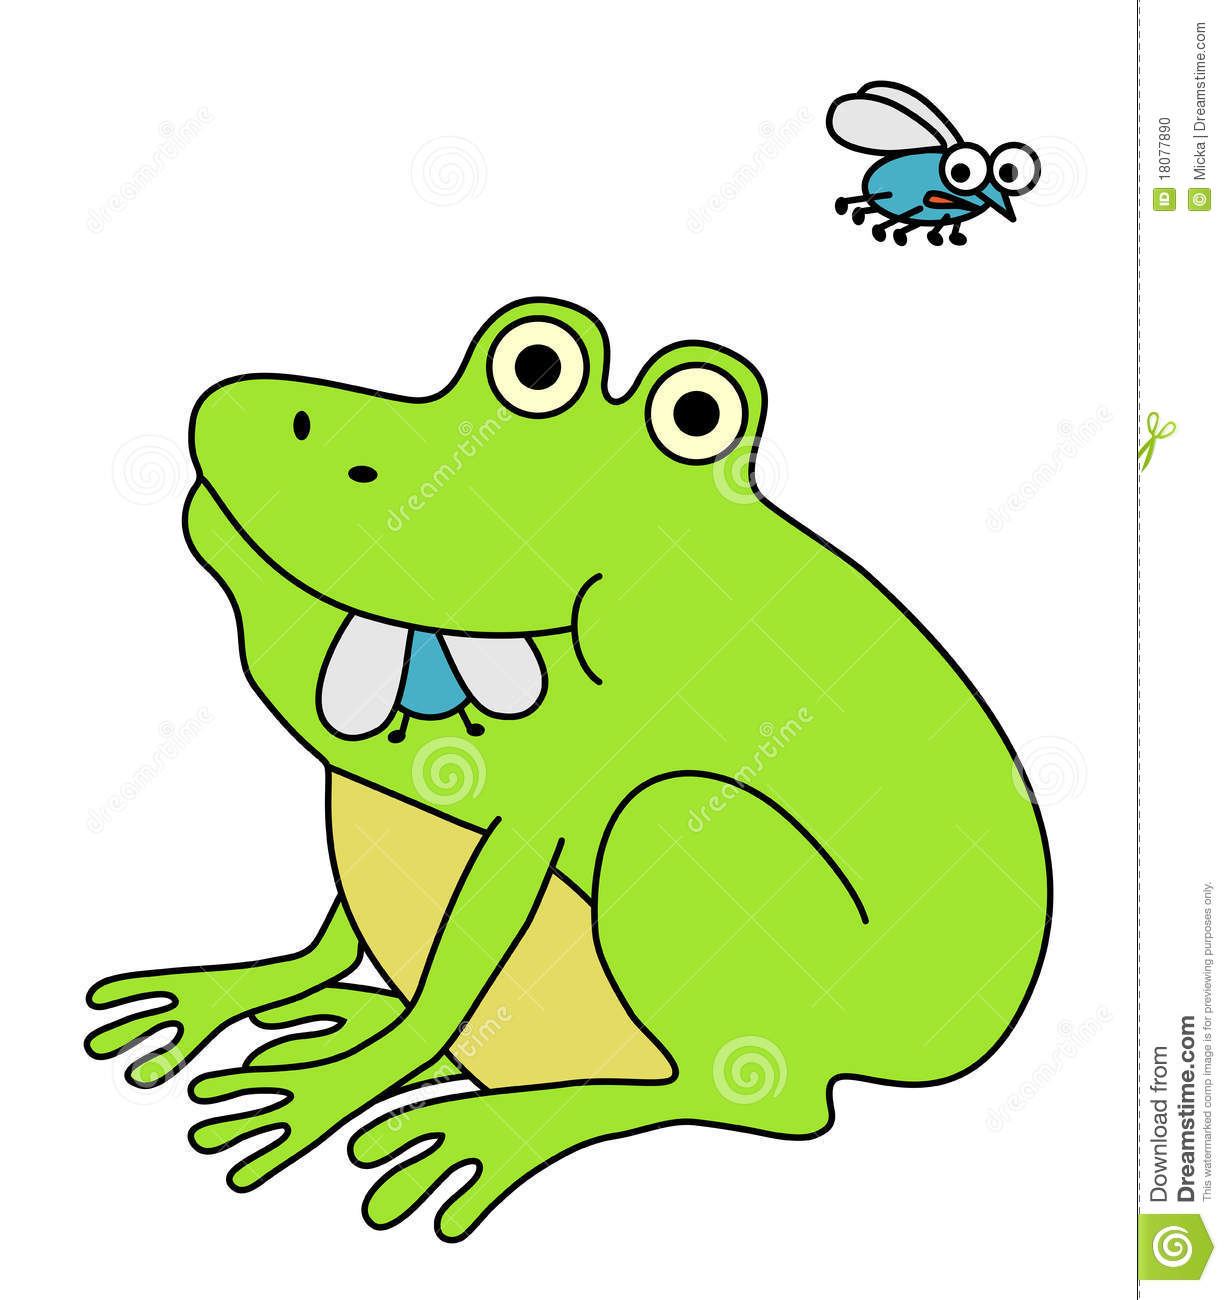 Frog eating clipart.